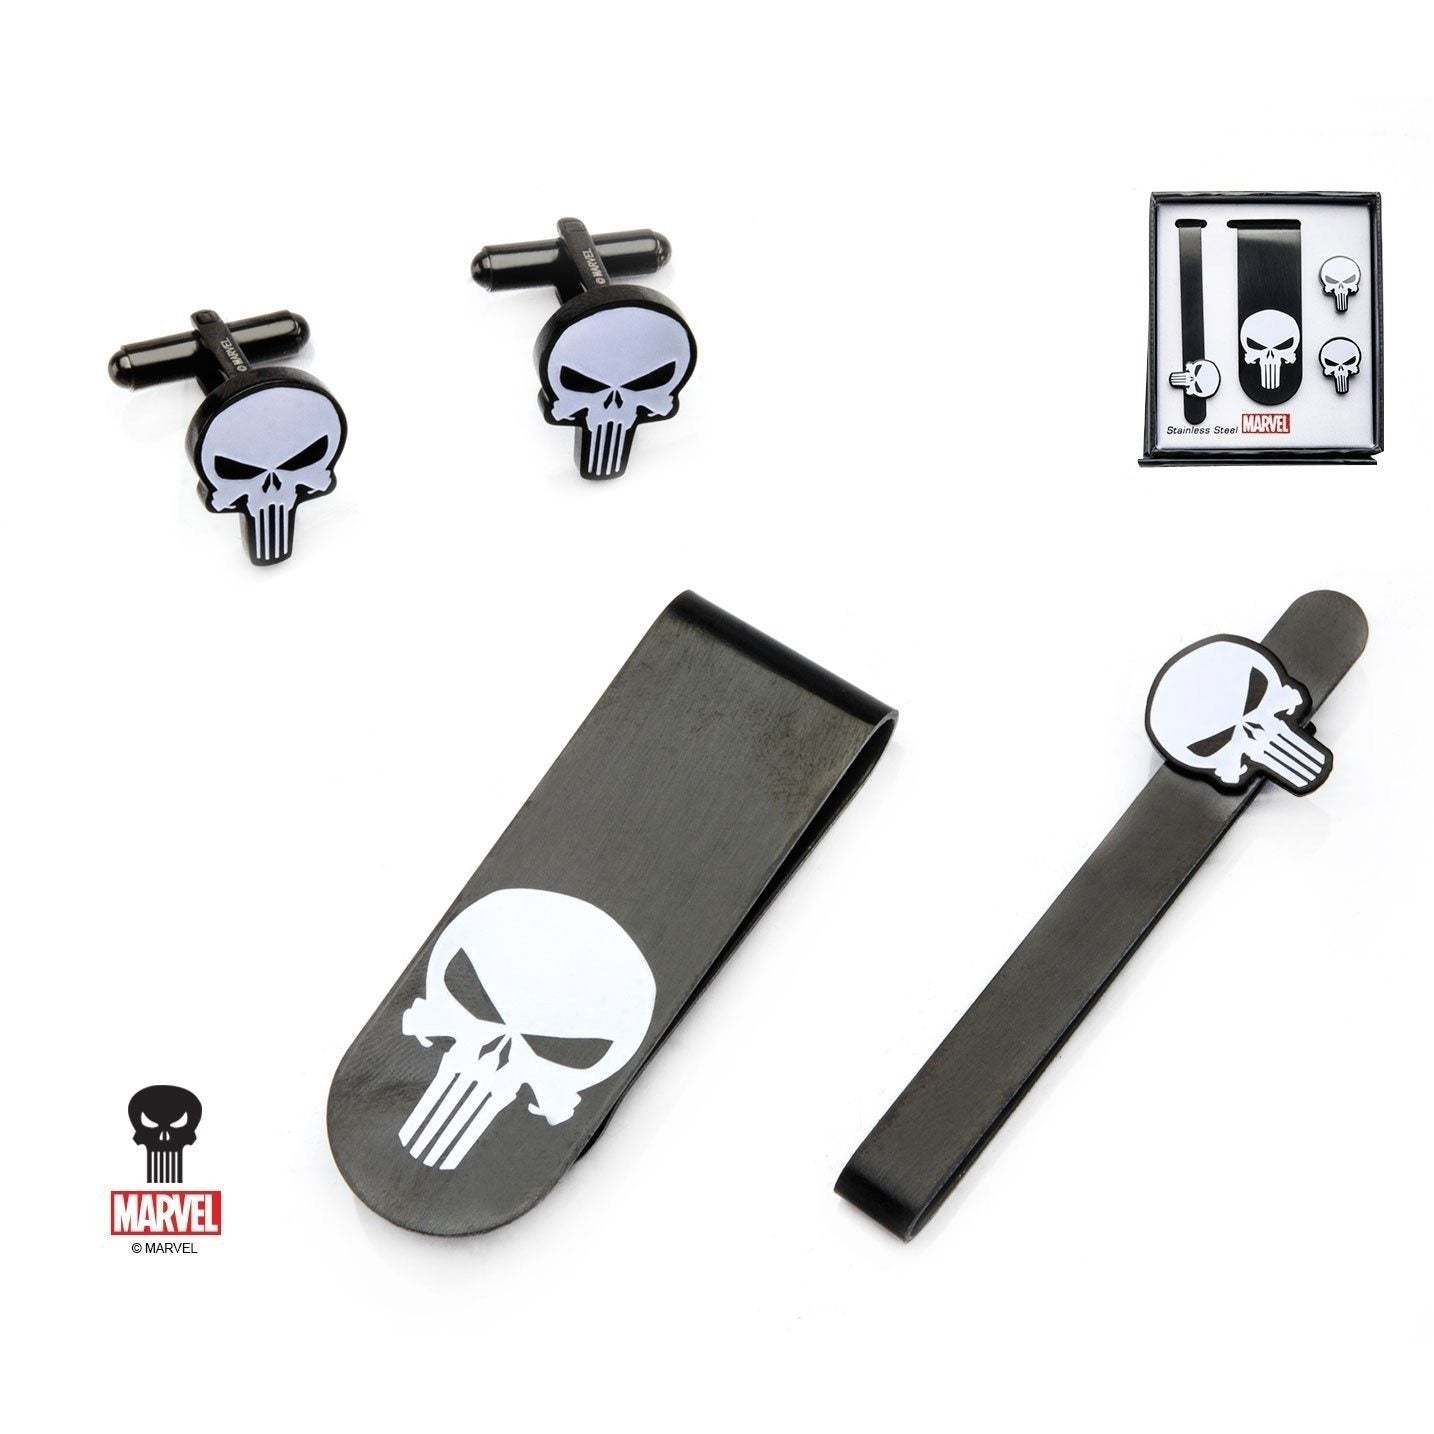 Marvel Punisher Gift Set with Cufflinks Tie Bar and Money Clip Marvel Comics